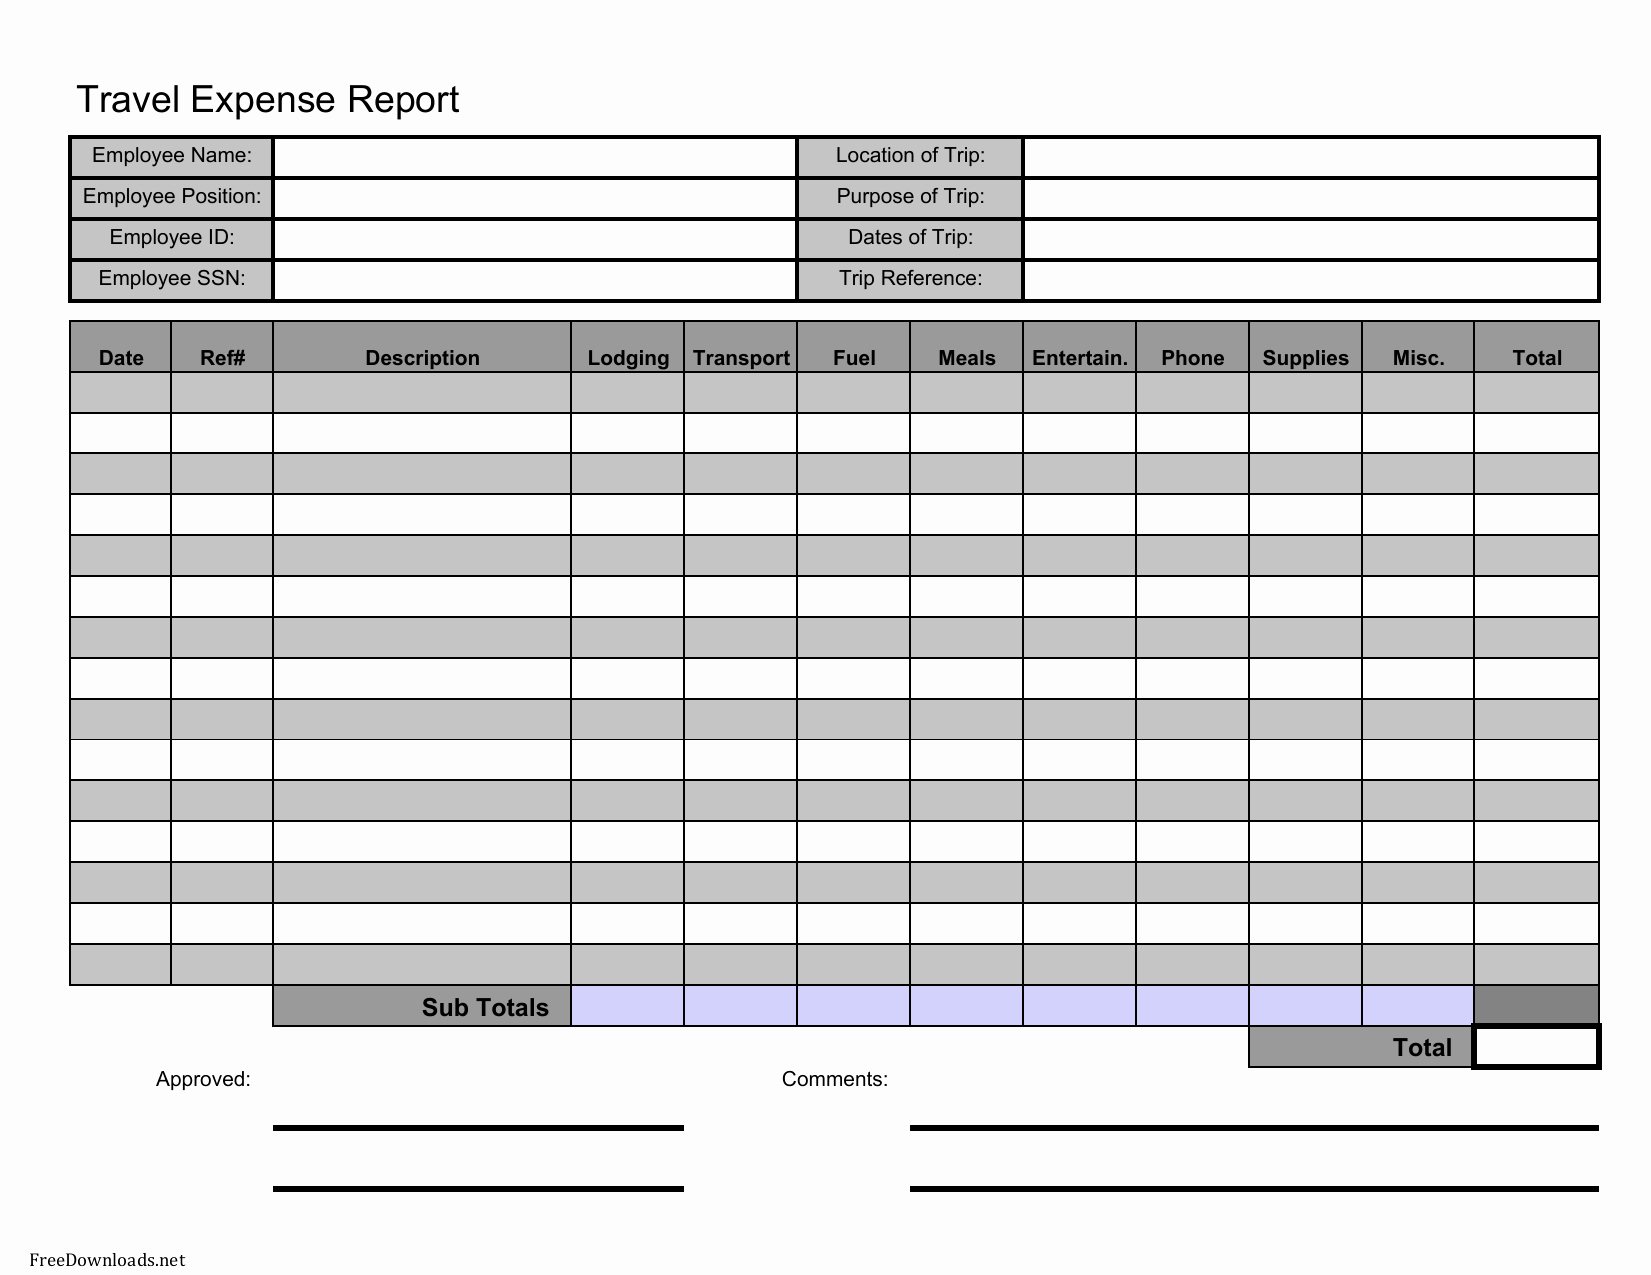 Excel Expense Report Template Beautiful Download Travel Expense Report Template Excel